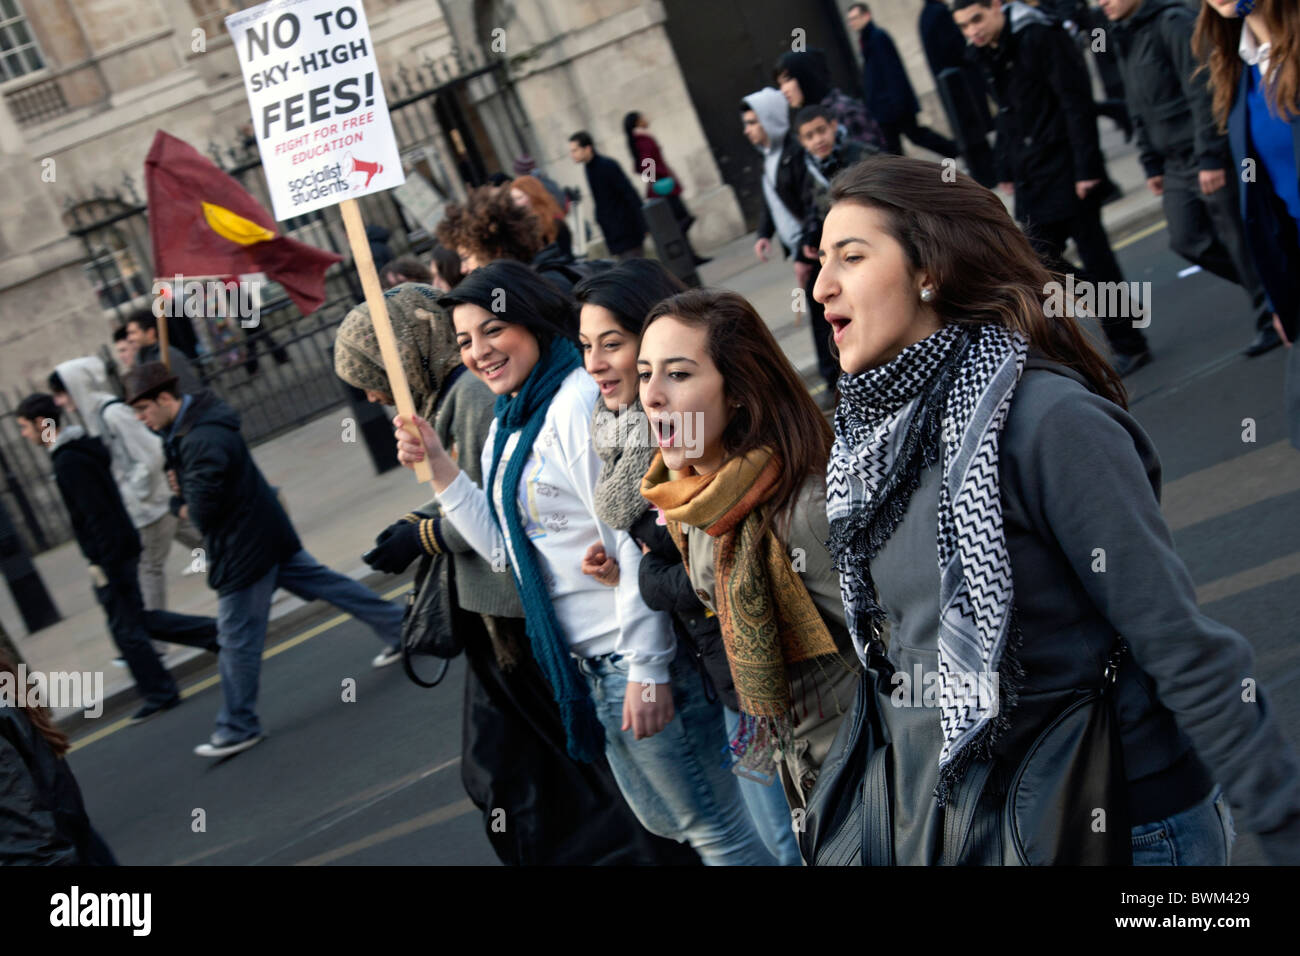 student protestors against tuition fees in london - Stock Image